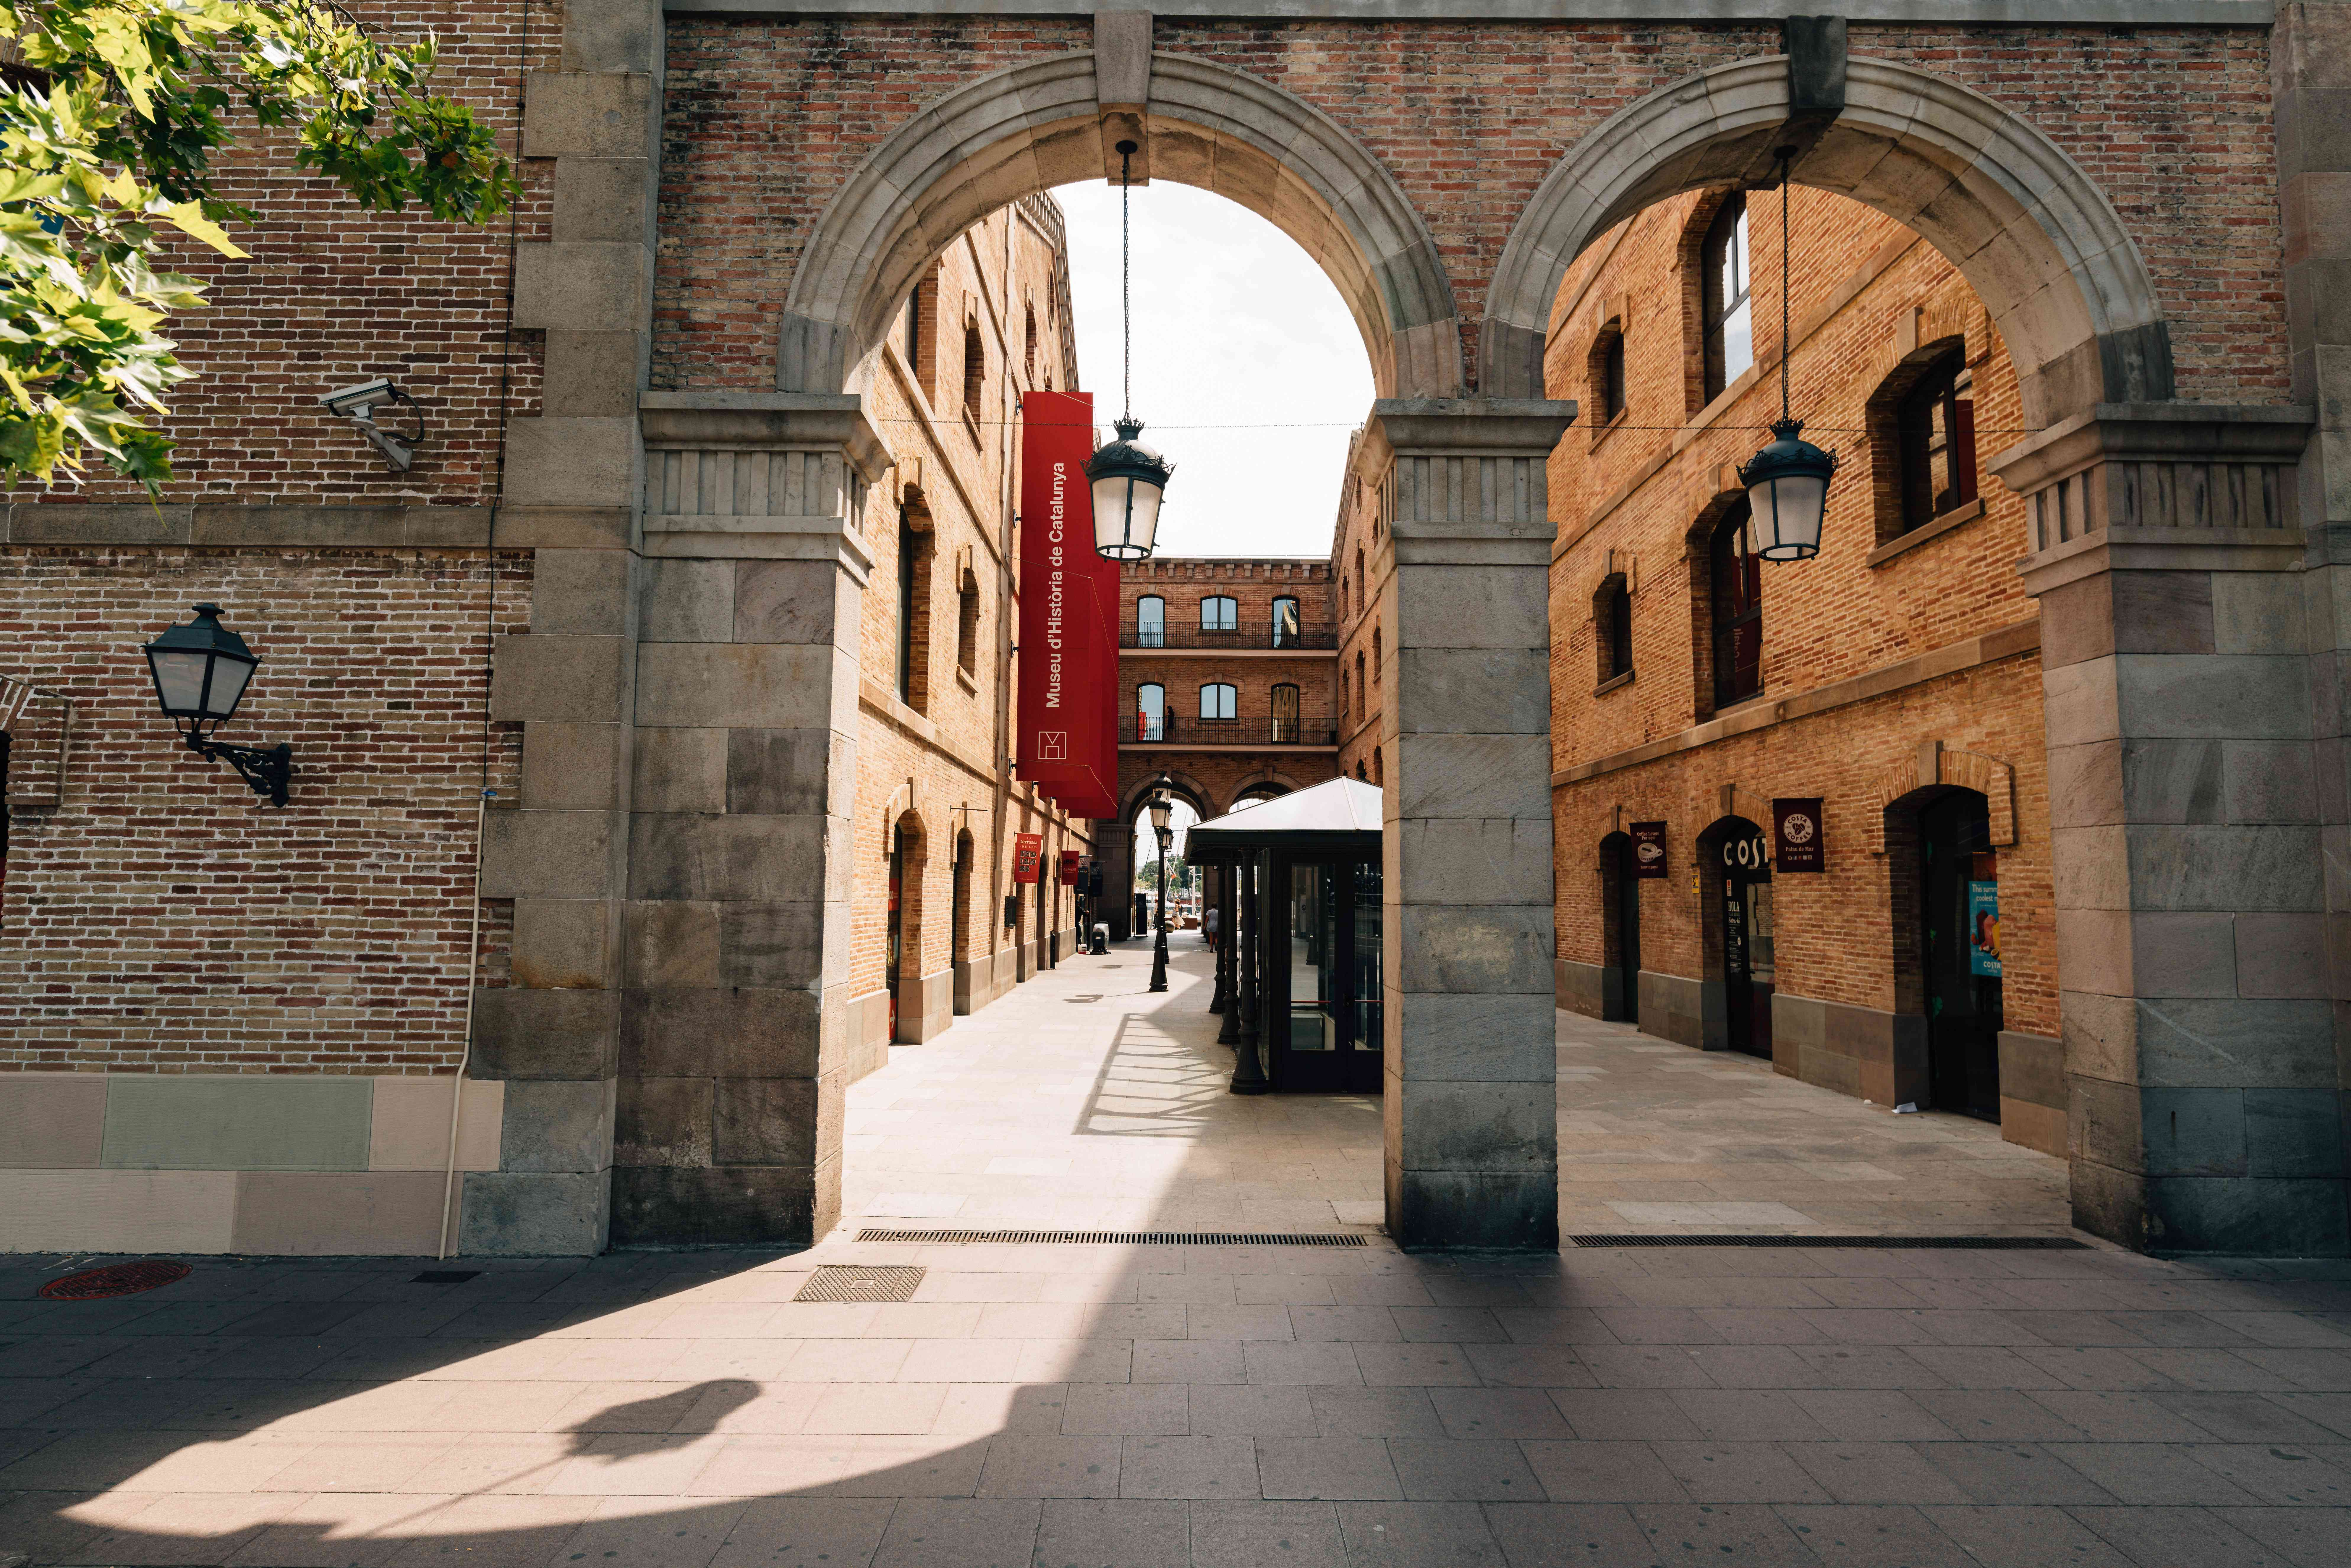 Entrance to the Catalonia History Museum